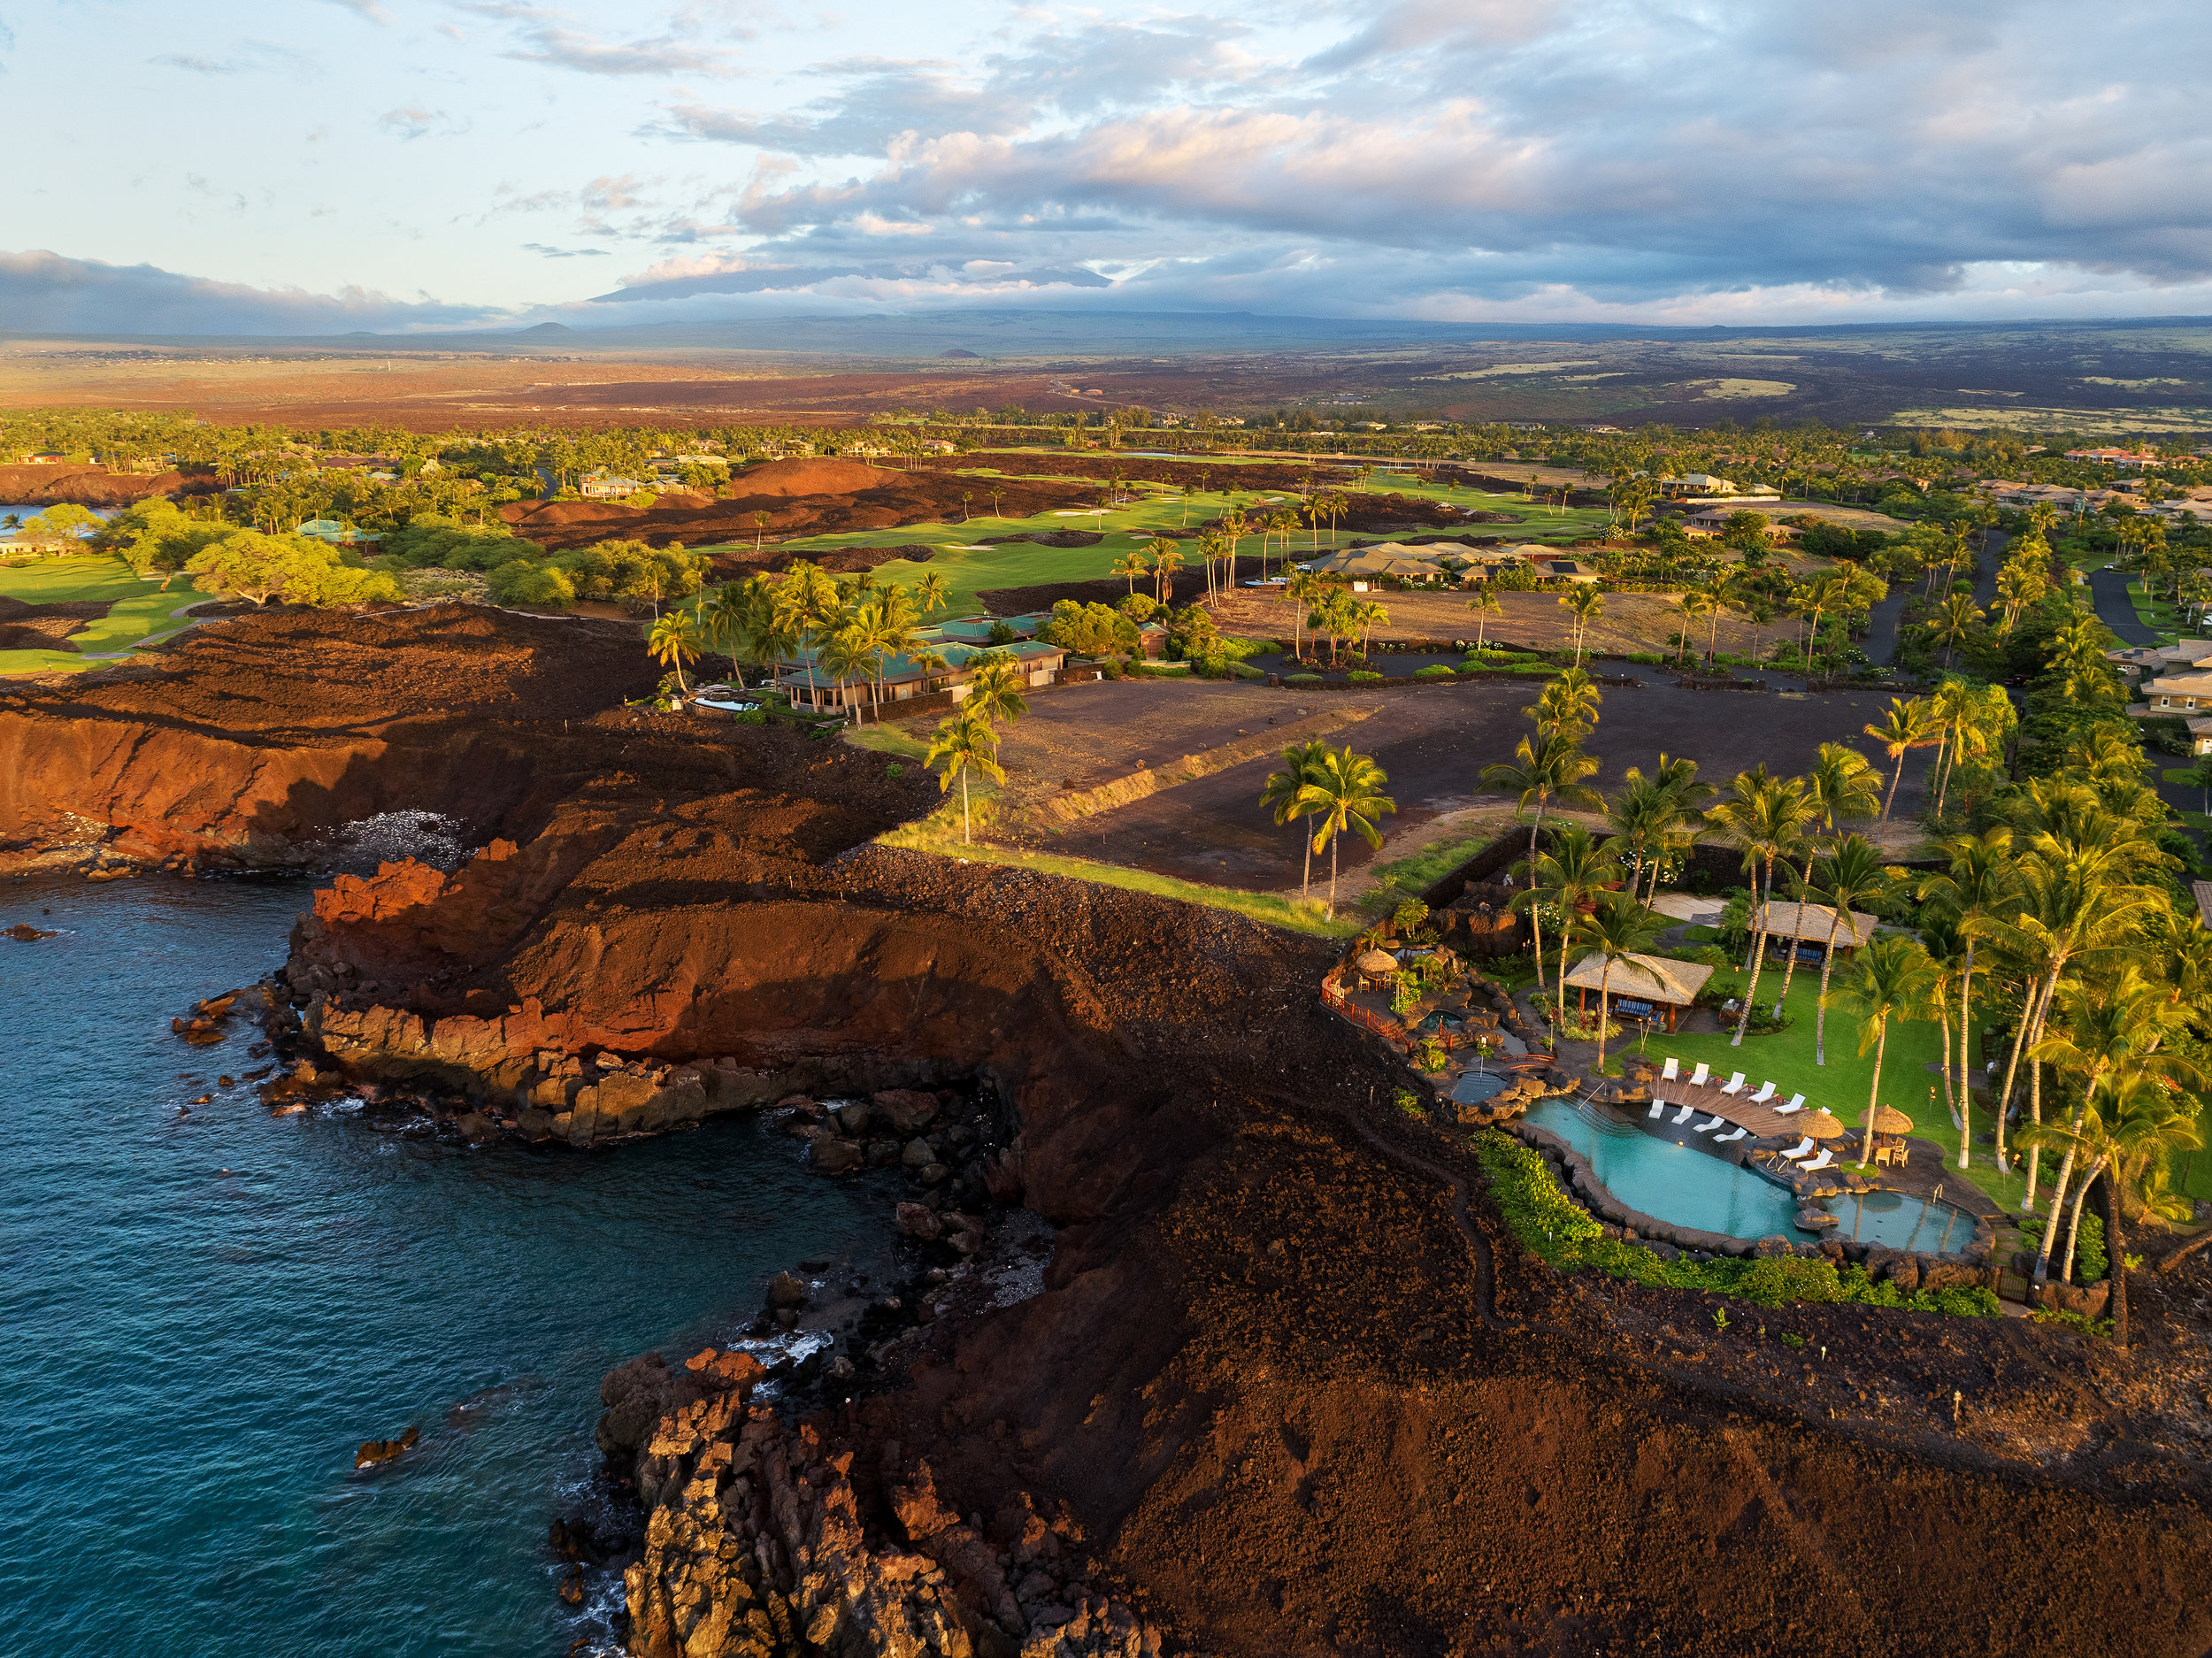 Aerial view of Ke Kailani custom home sites (left) within Mauna Lani Resort.